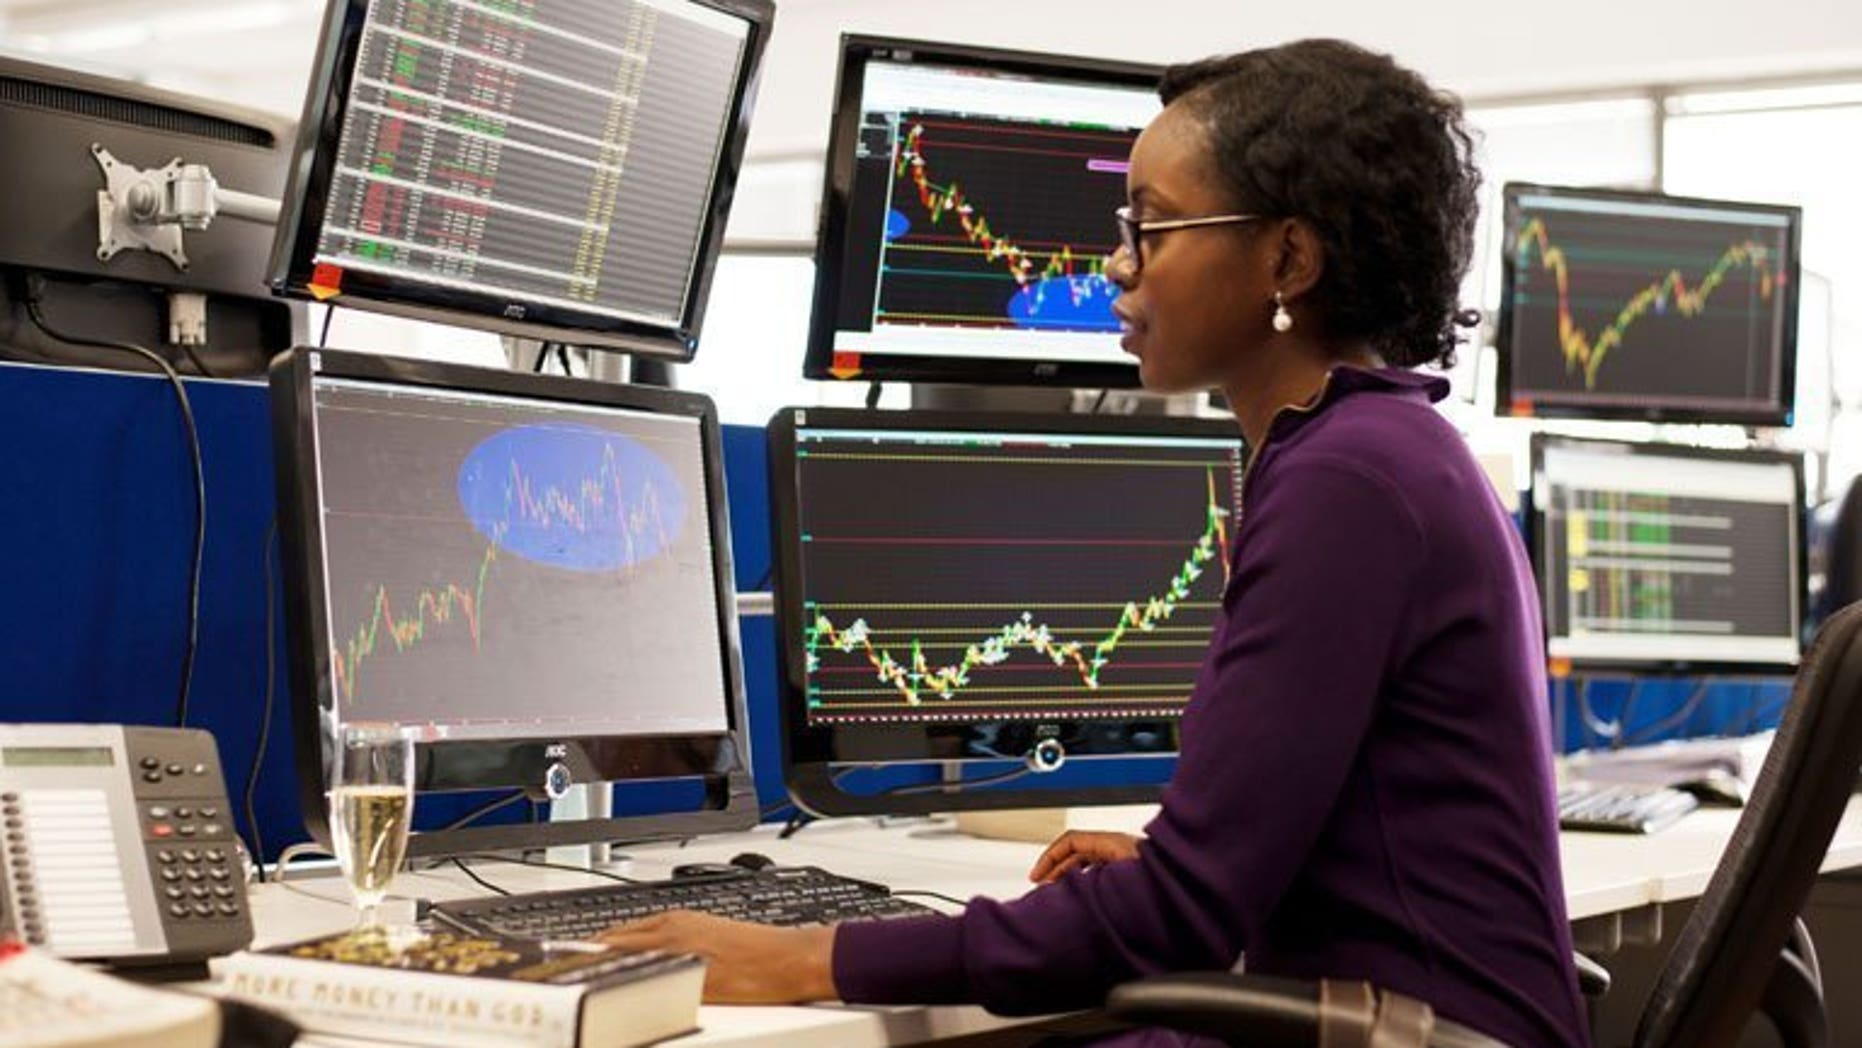 A woman takes part in a trader training programme in London on September 19, 2011. London shares recovered on Thursday as IMI surged after the engineering company's first half results.